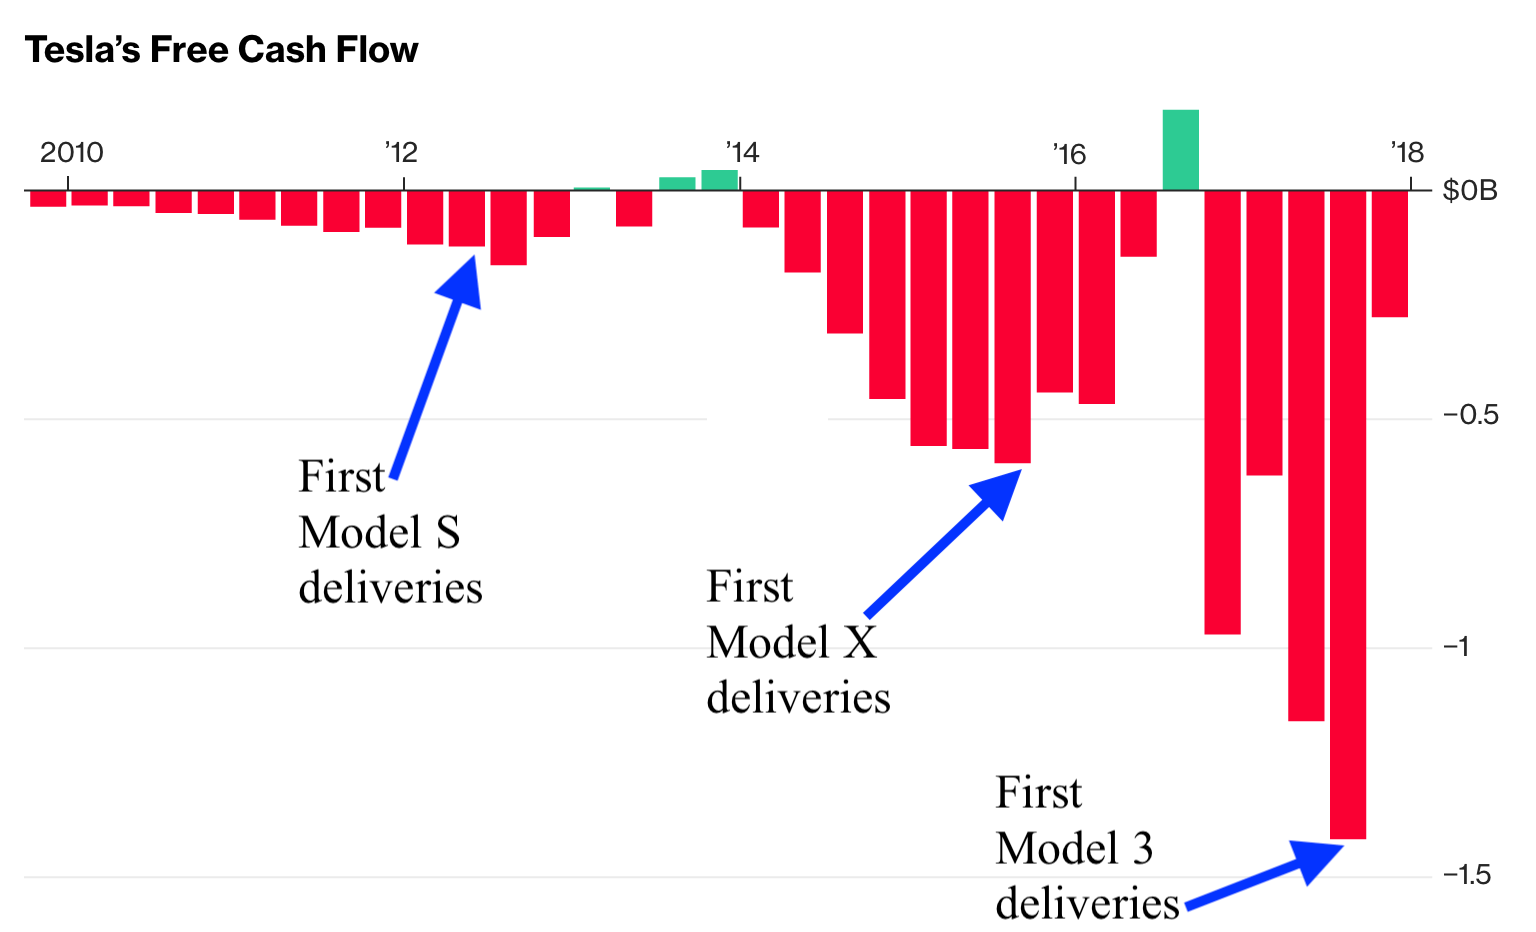 it's silly for stephens to take a snapshot of tesla's current losses  without broader context and insight into the company's business plan